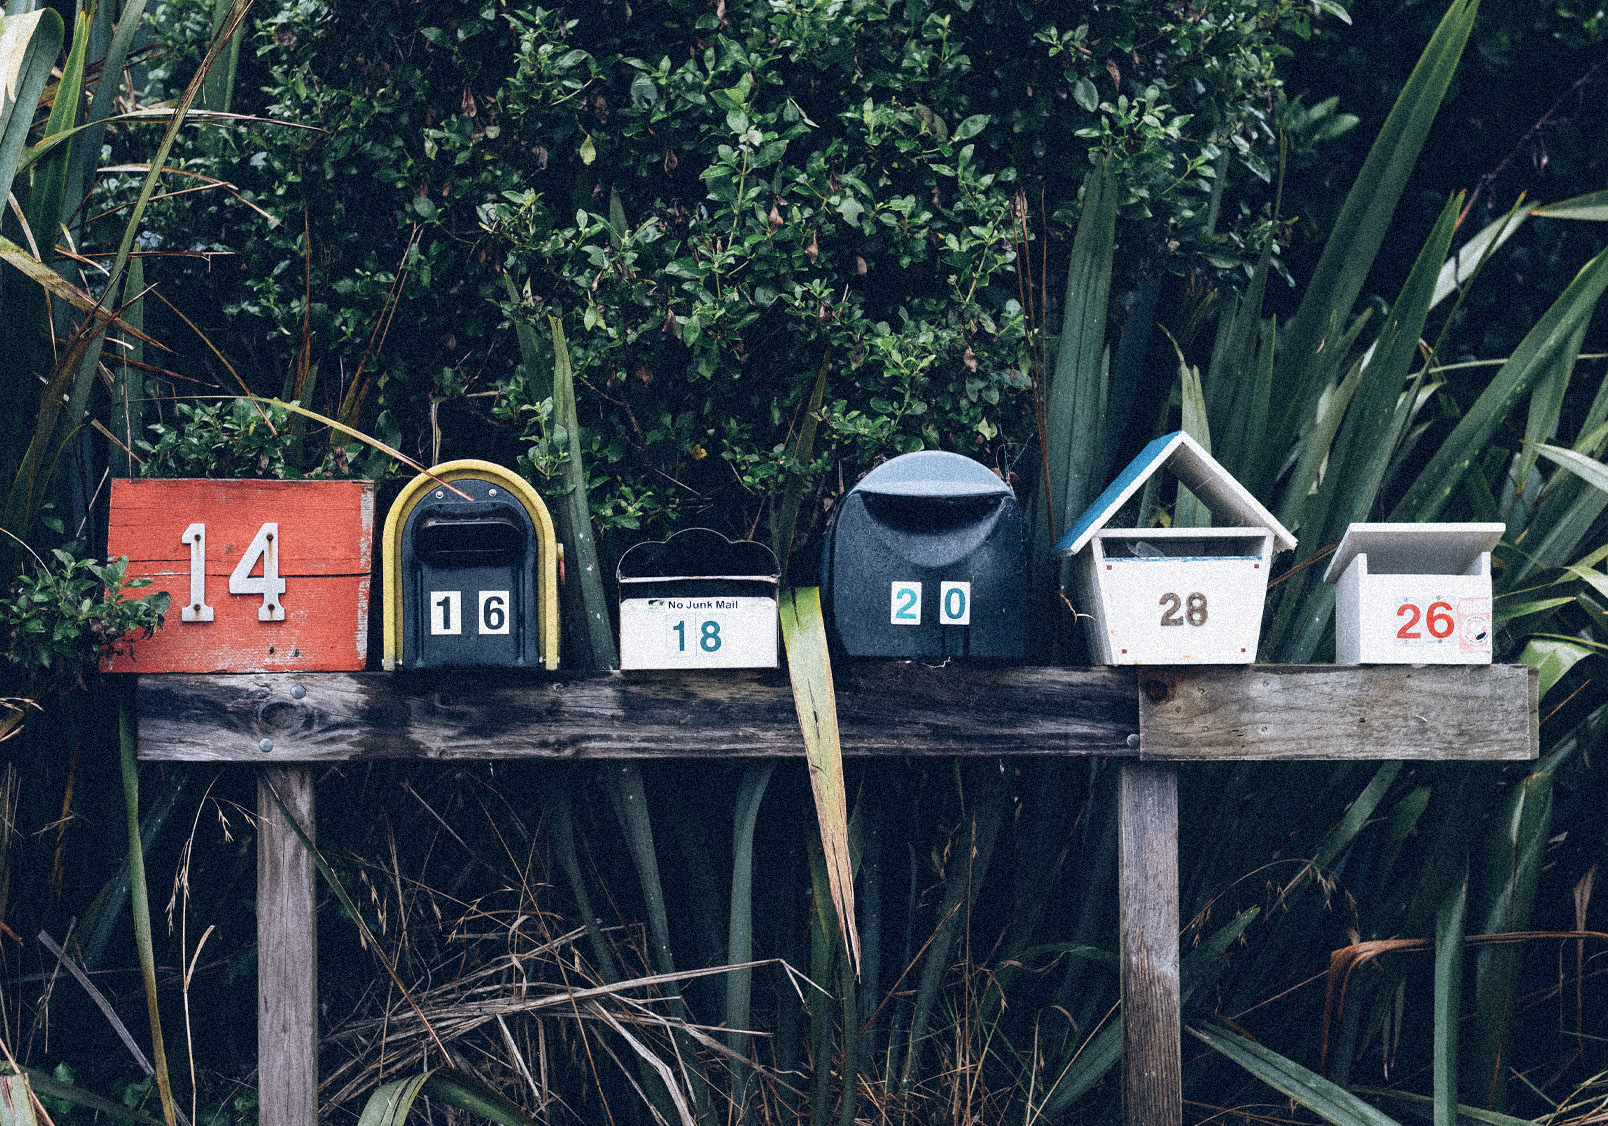 A note about International Postage and the end of the world…